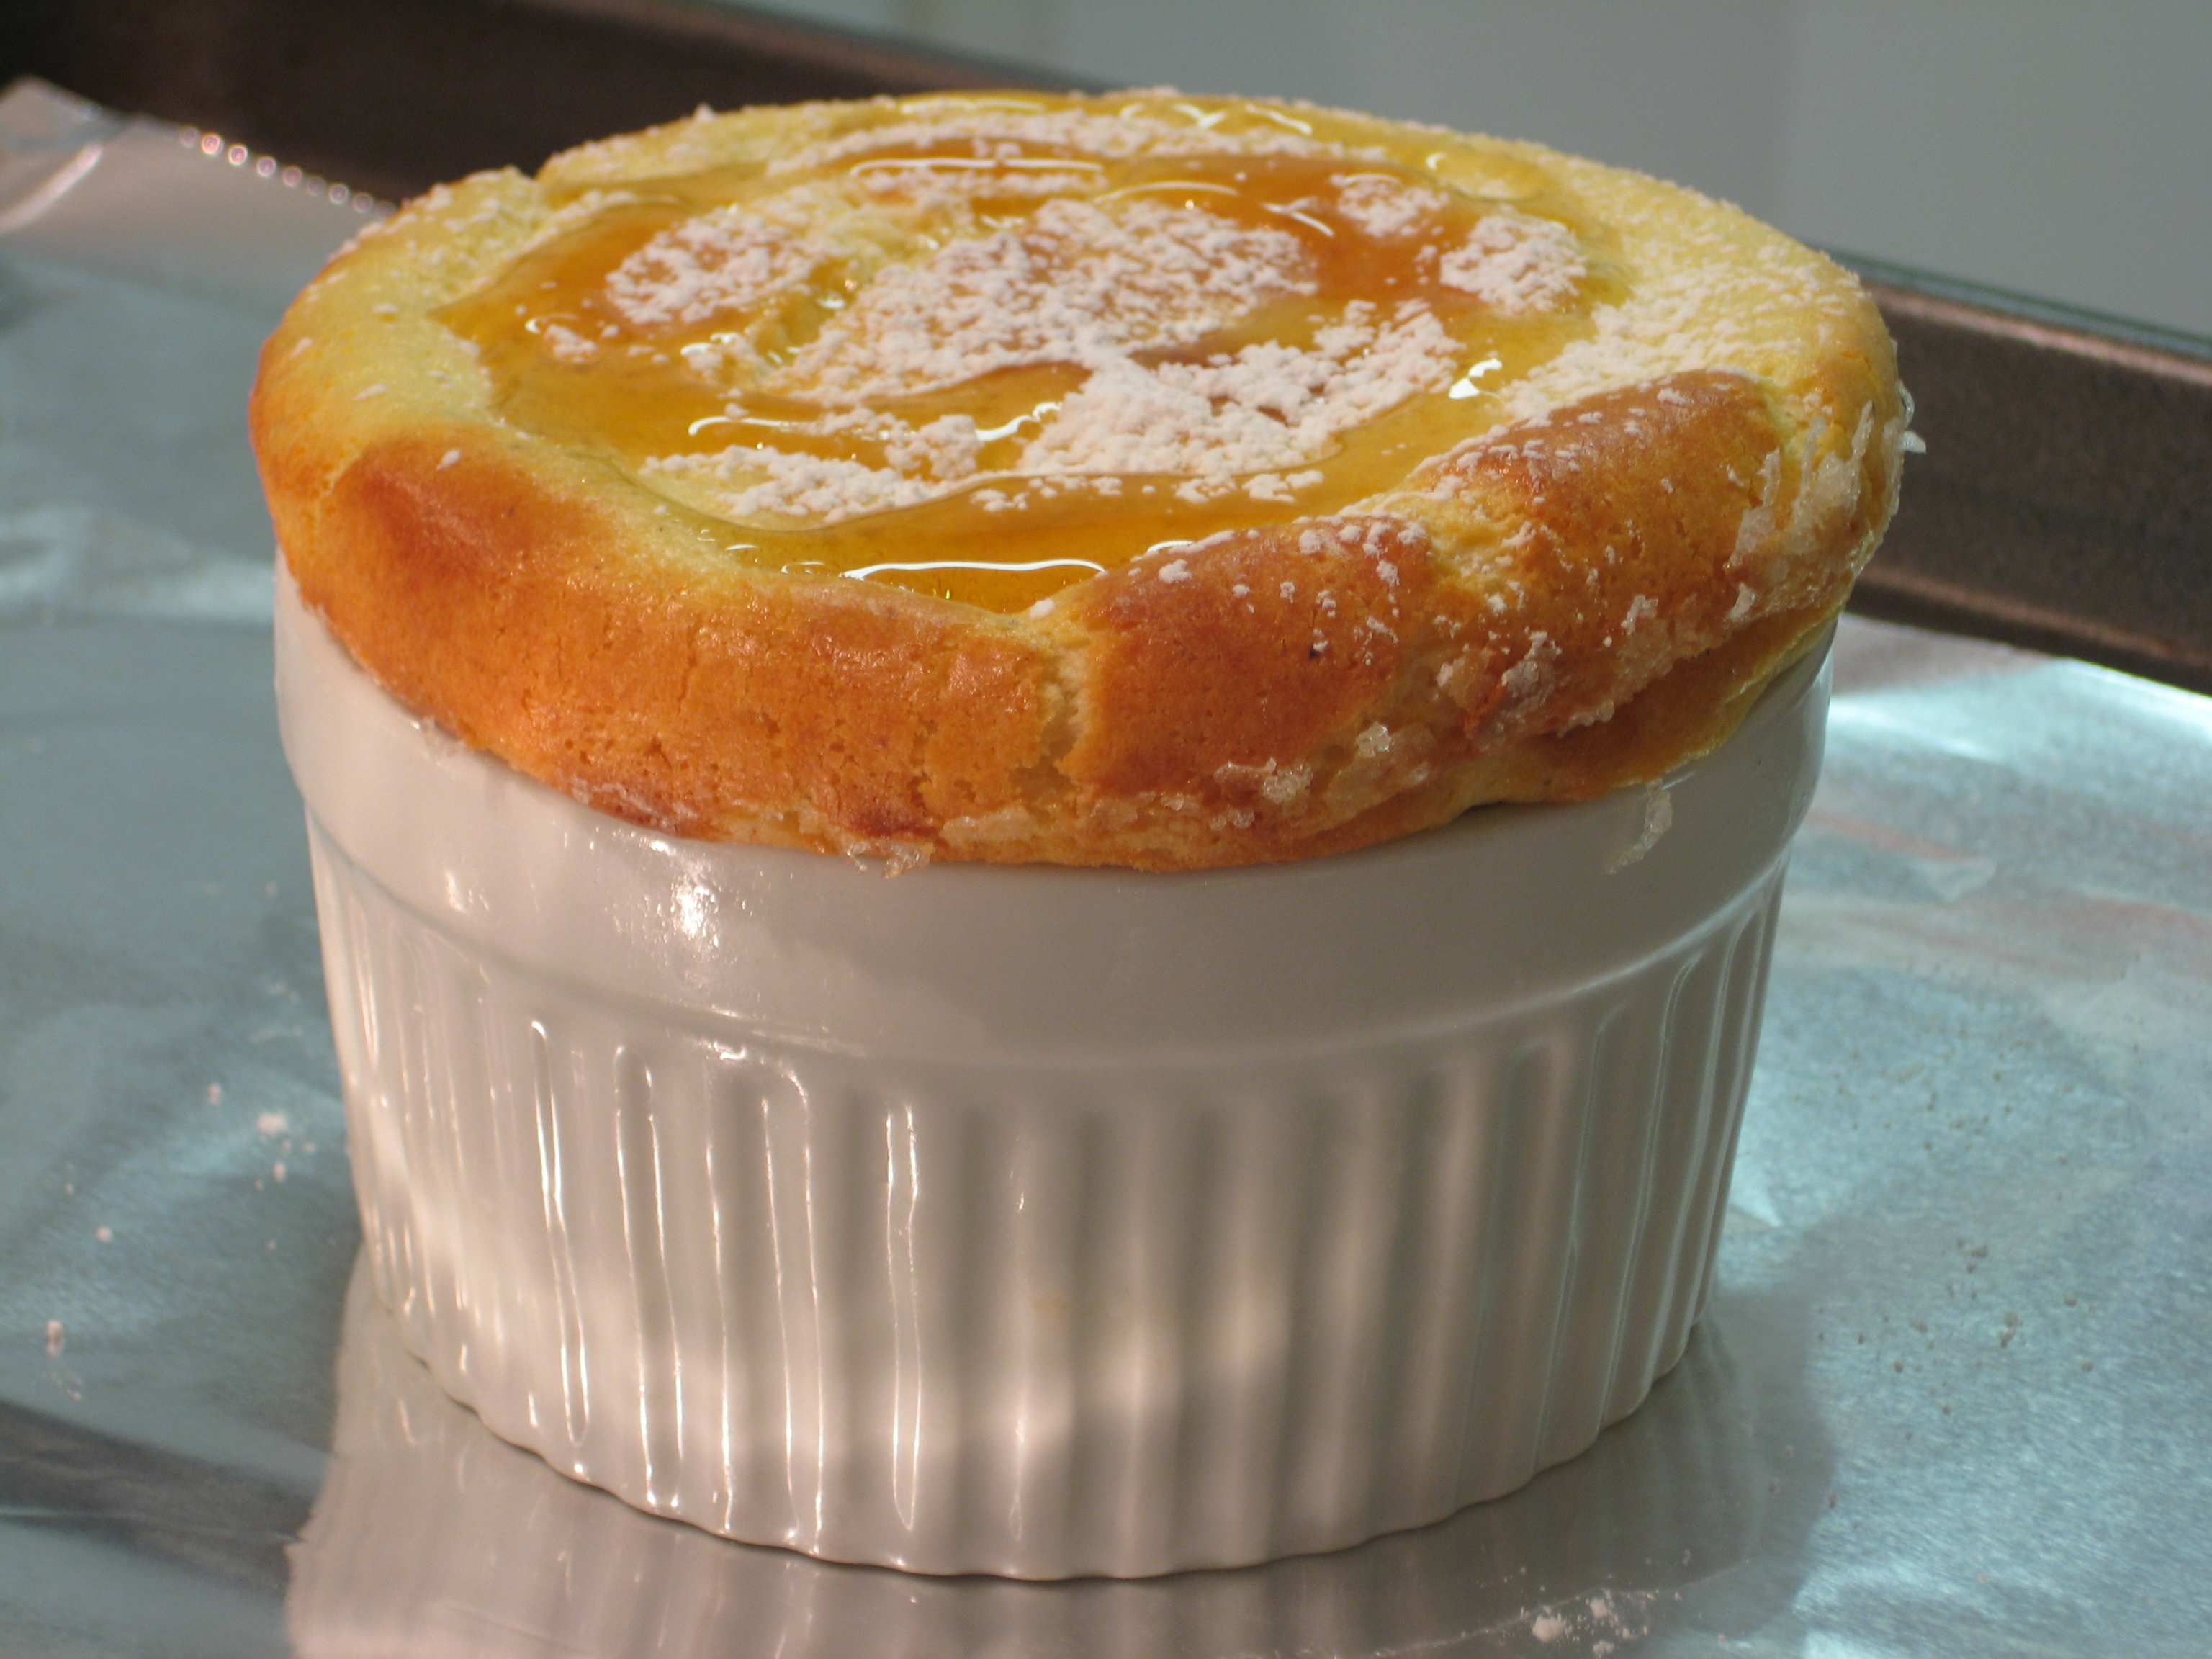 Blue Cheese Souffle after Refrigerating